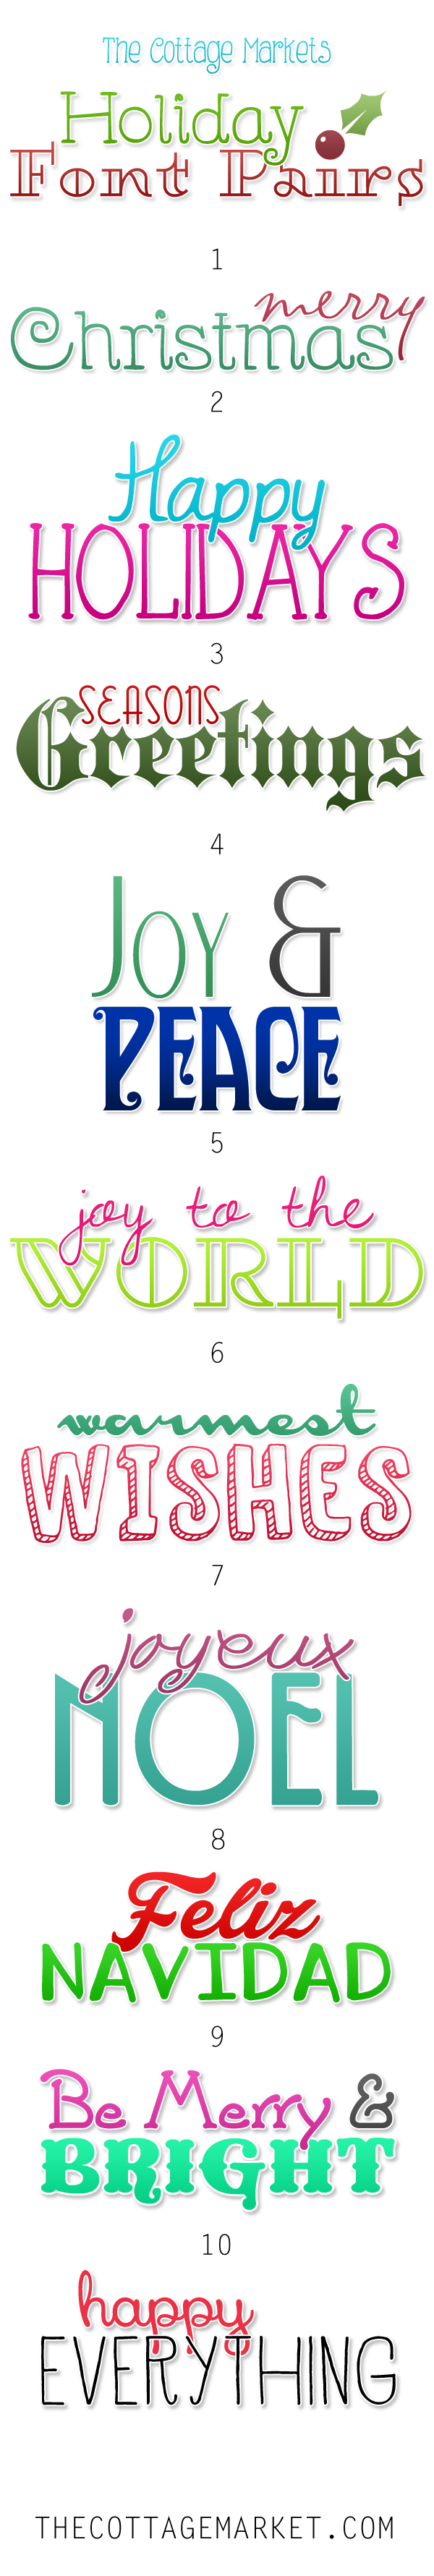 http://thecottagemarket.com/wp-content/uploads/2014/11/TheCottageMarket-HolidayFontPairs-2014-Tower-1.png